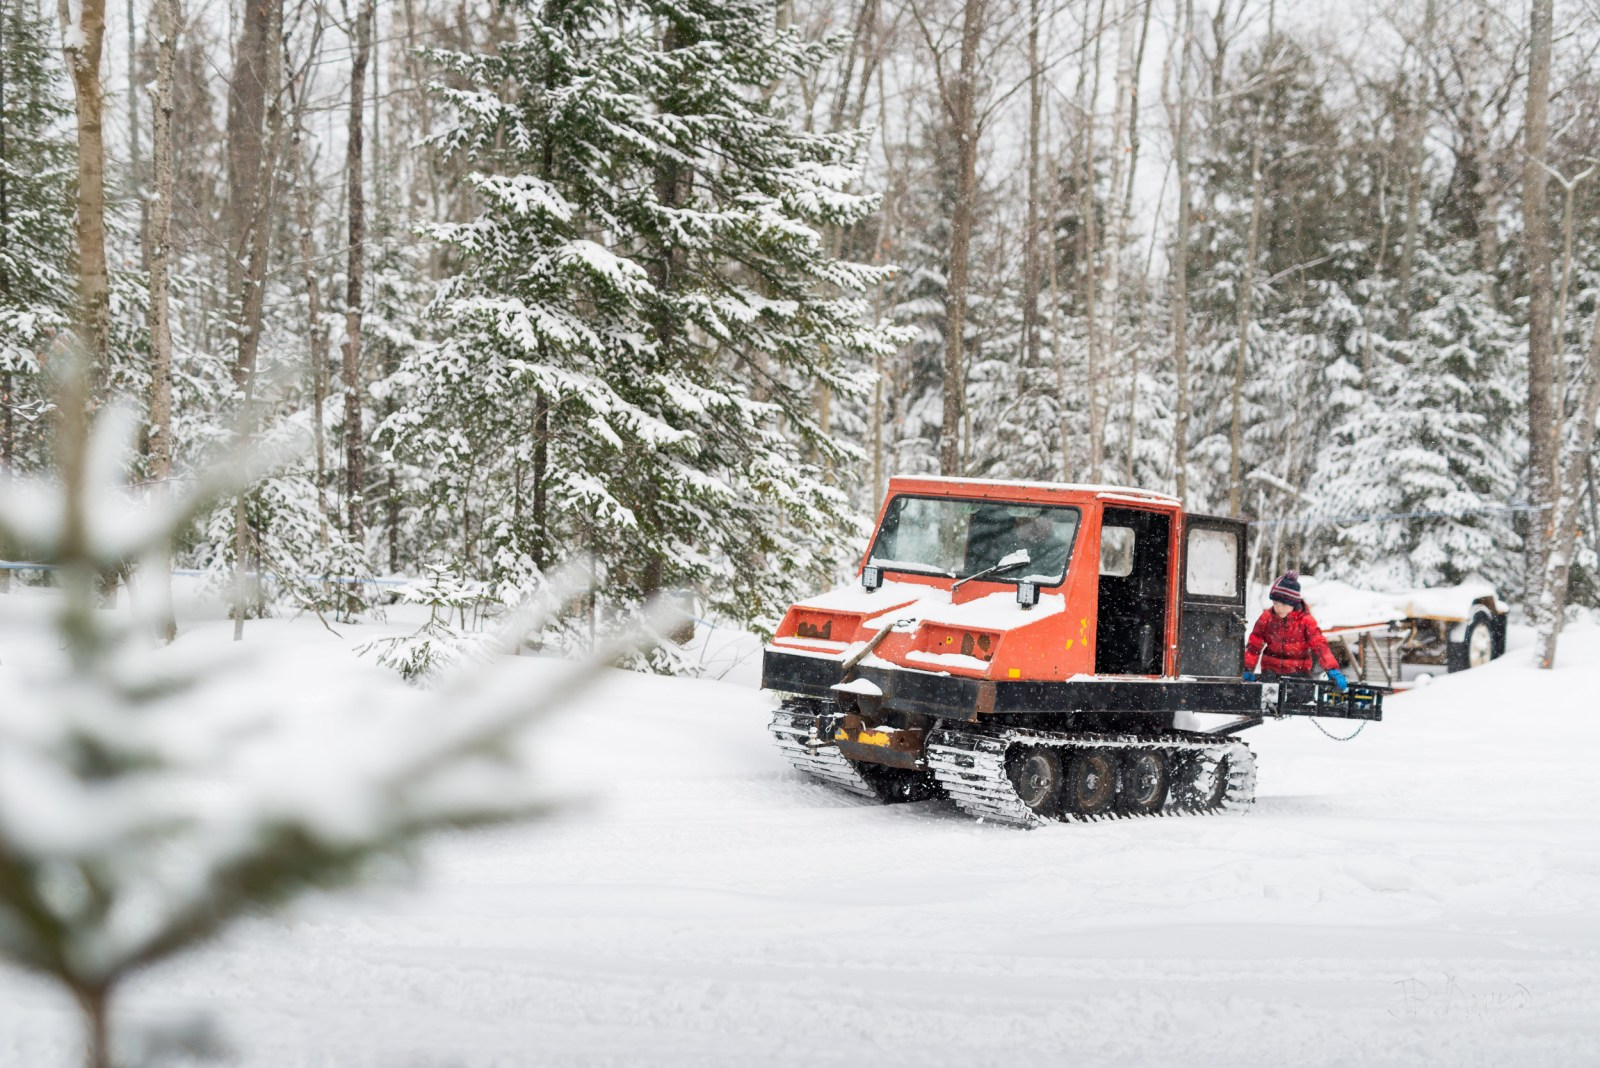 Boy in red winter jacket rides on the back of snow groomer as it treks through snowy Ontario forest